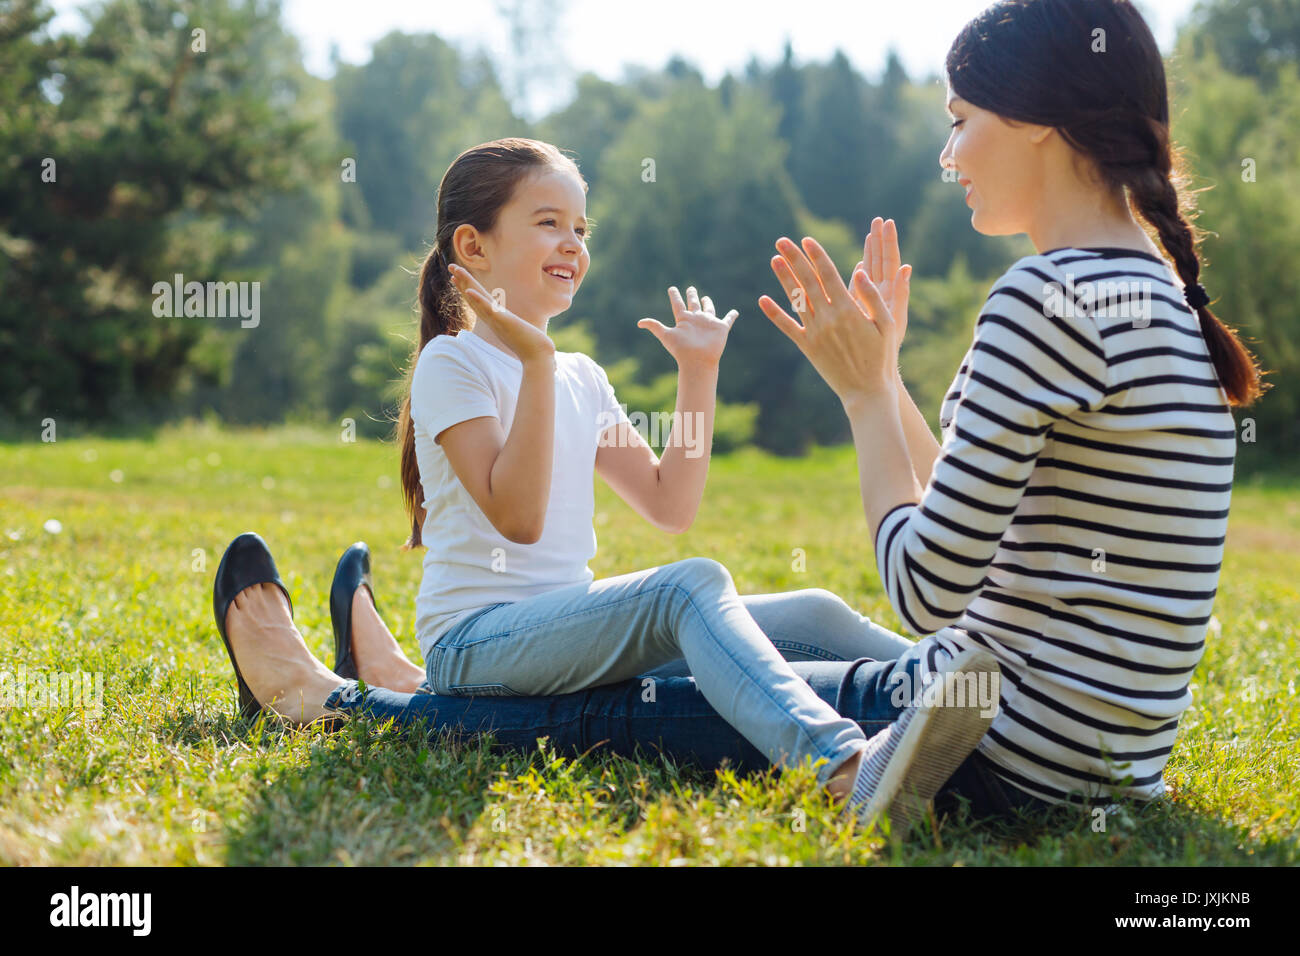 Happy daughter playing pat-a-cake with her mother outdoors - Stock Image